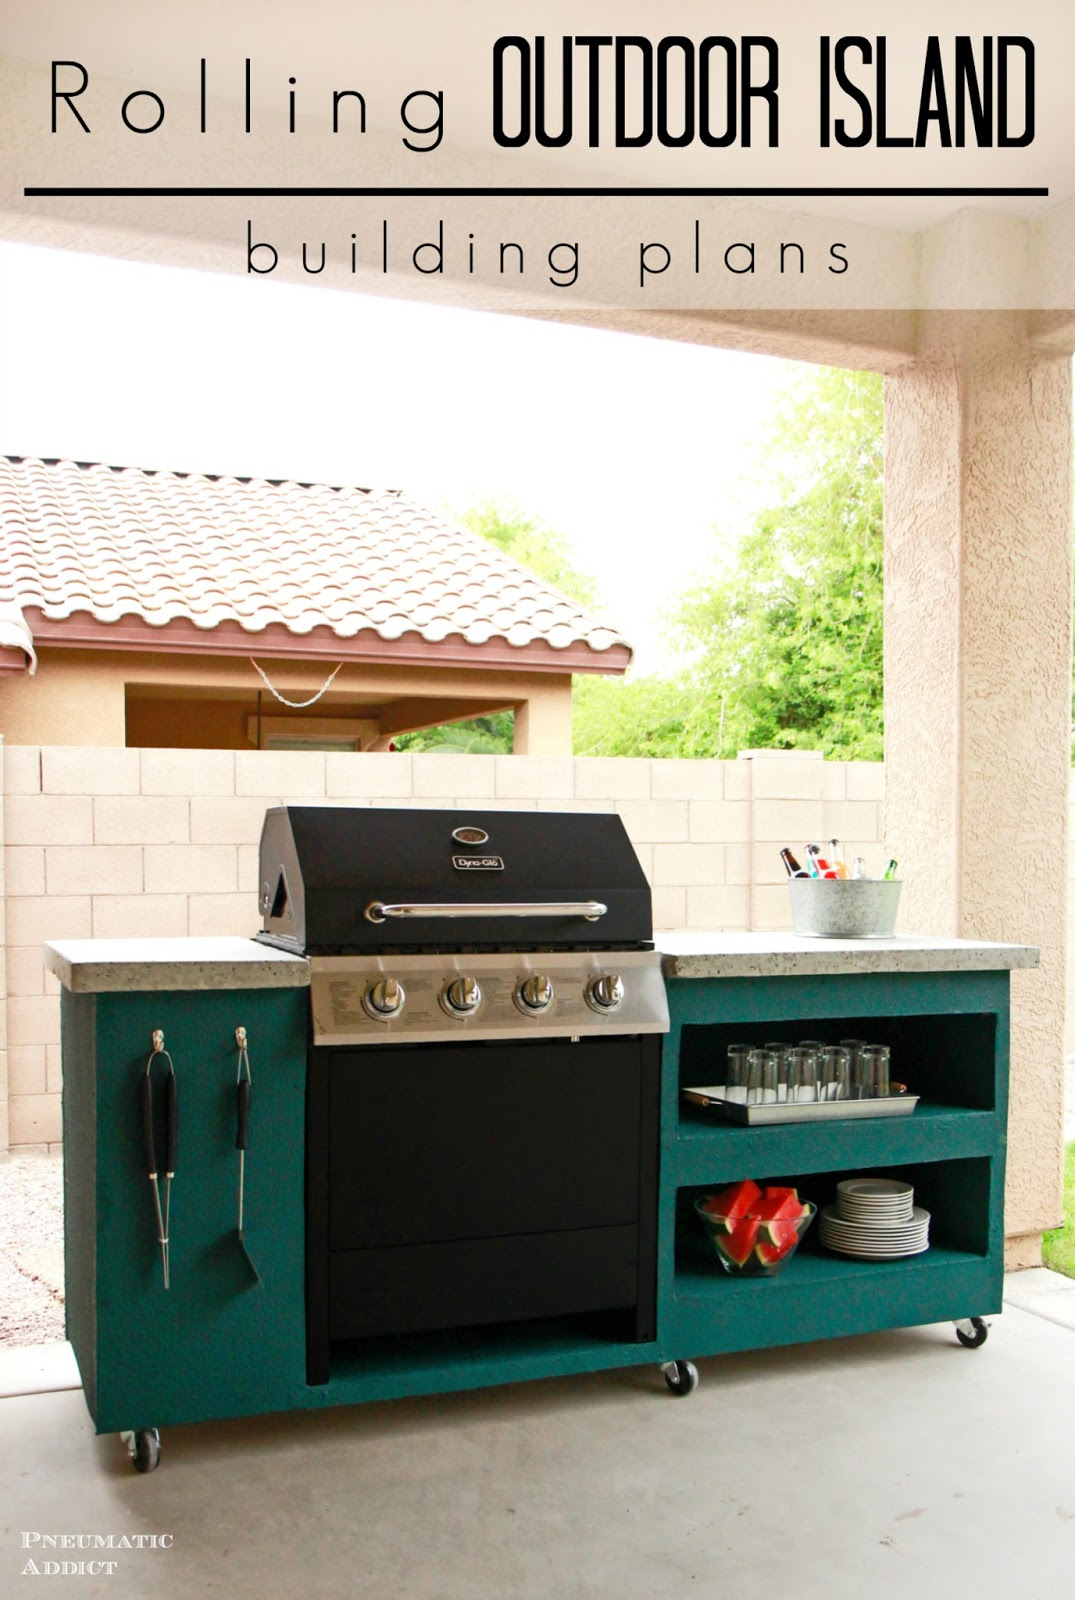 Learn How To Build Your Own Rolling Outdoor Grill Island